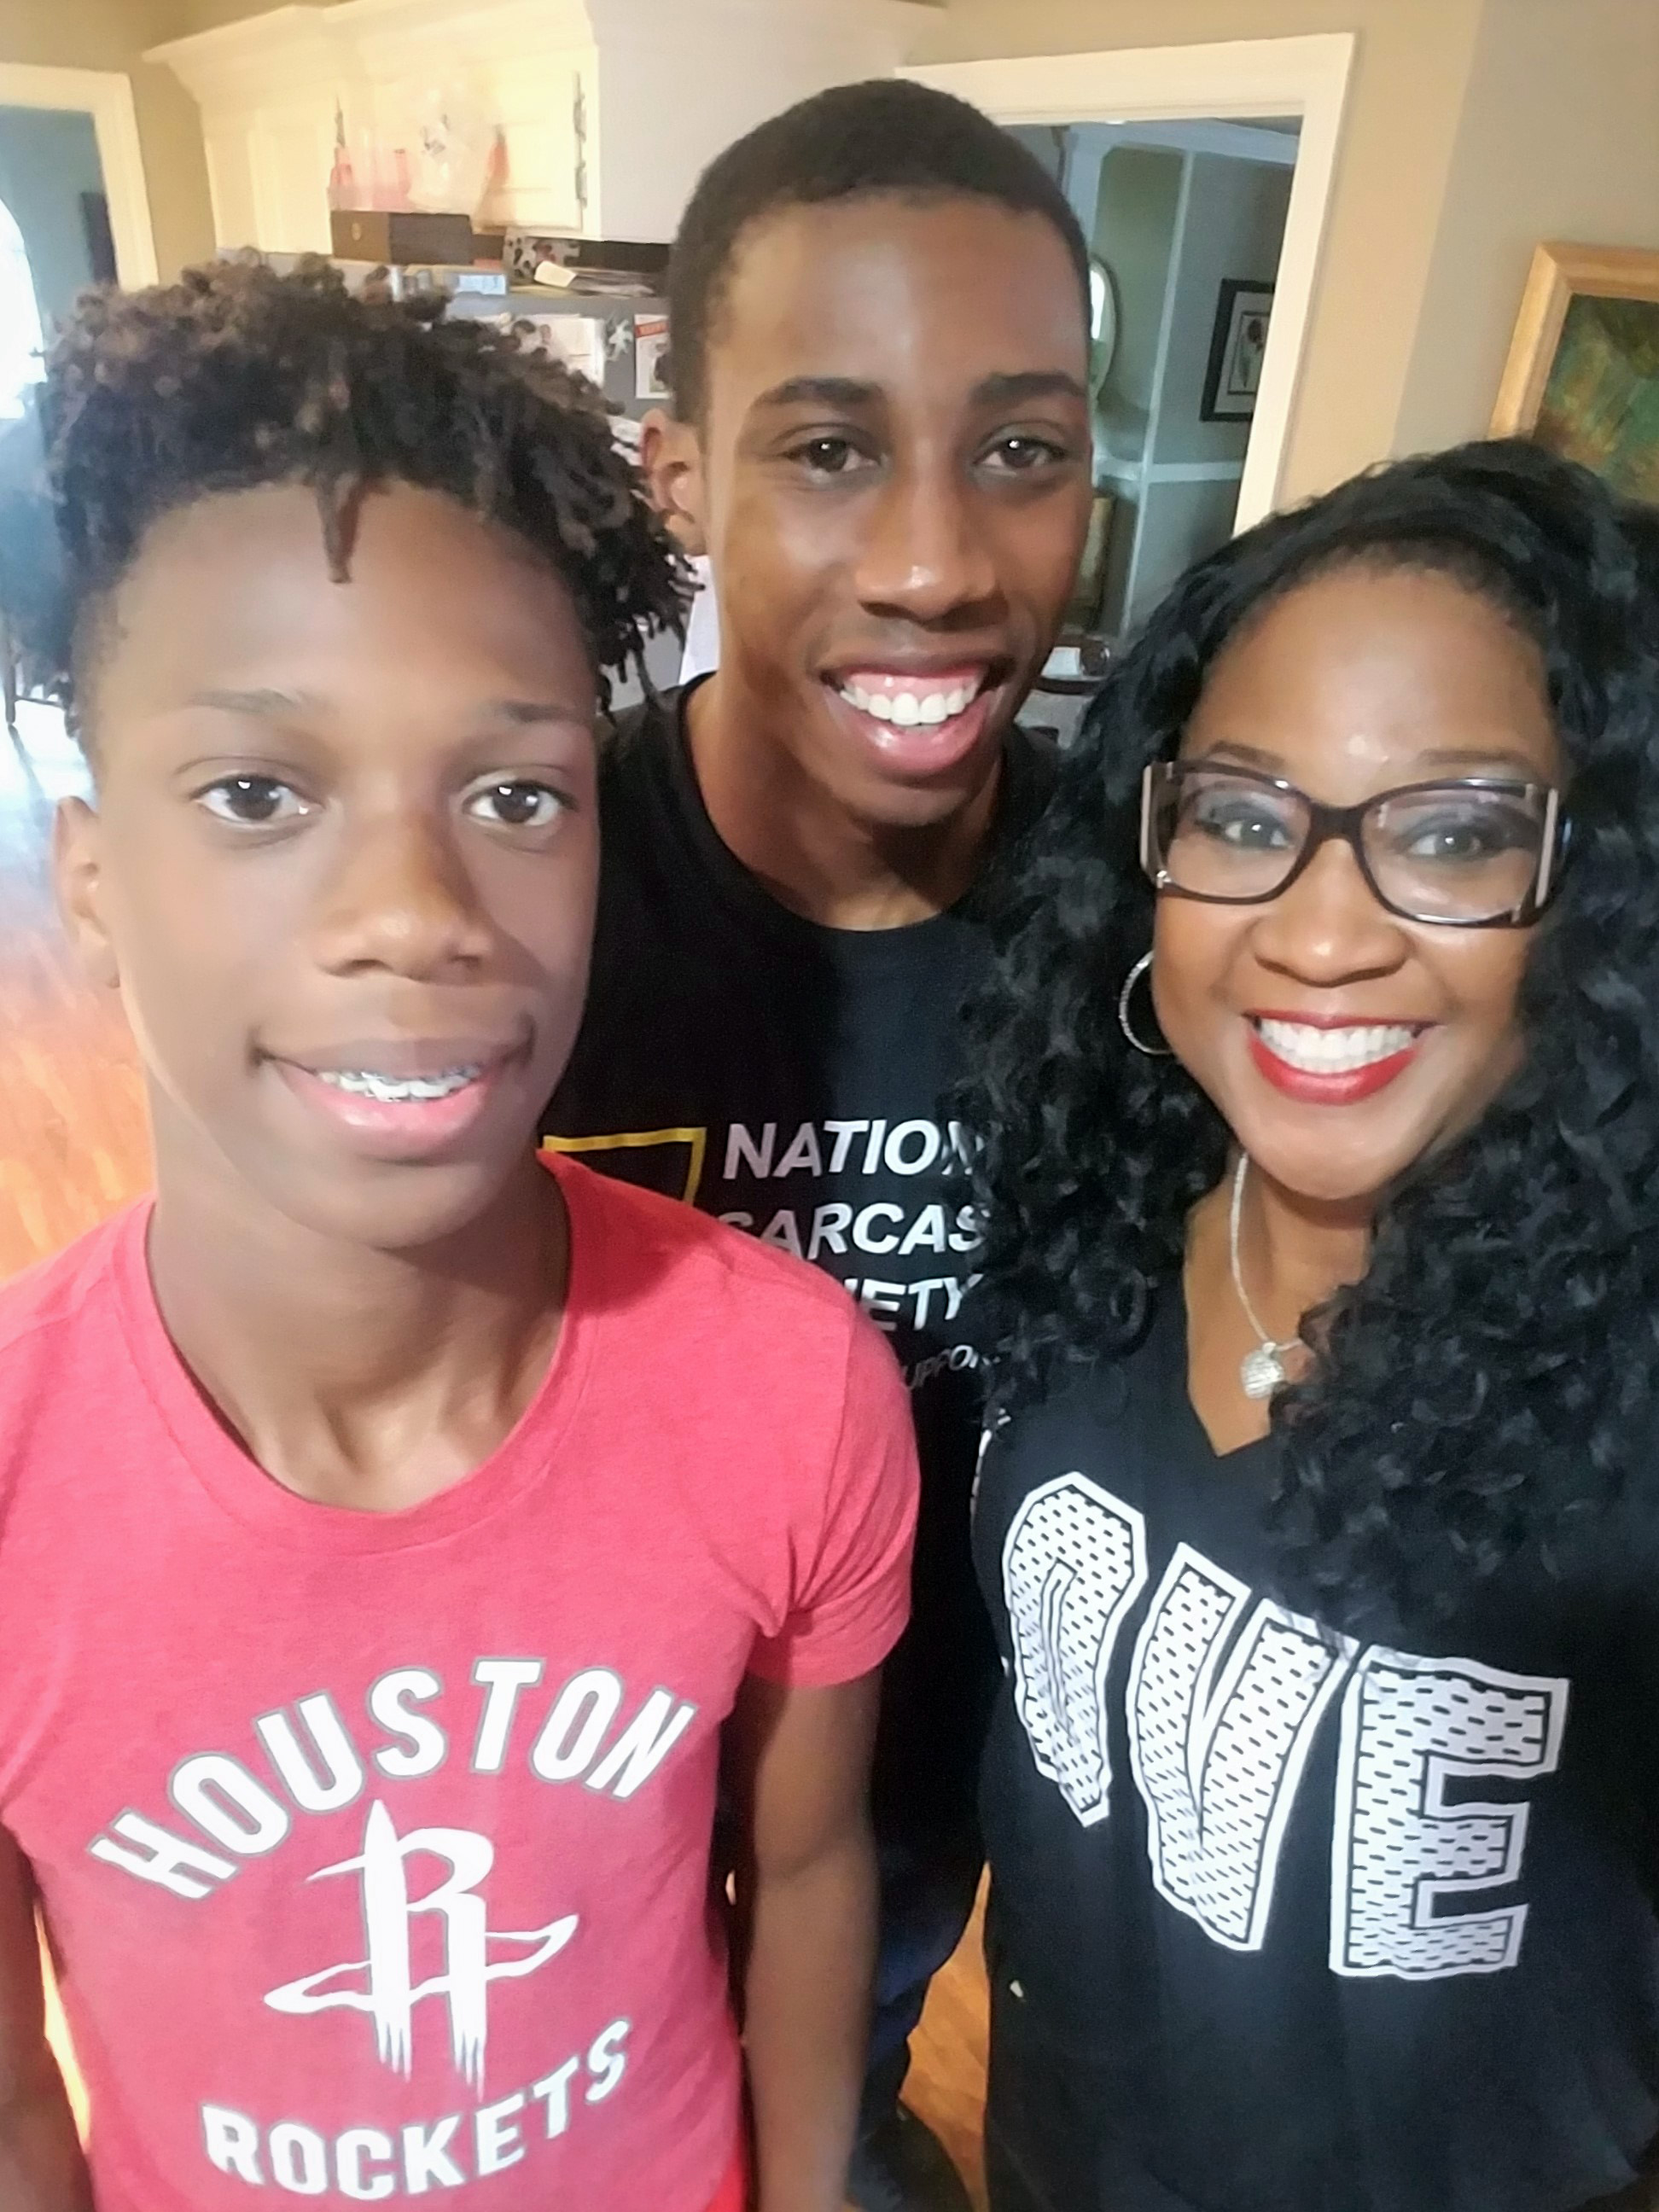 Since Christian (center) has been Deployed to Qatar, this past June was the first time he has been able to visit his brother, Jamaal, and mother, Joyce, here in Texarkana.